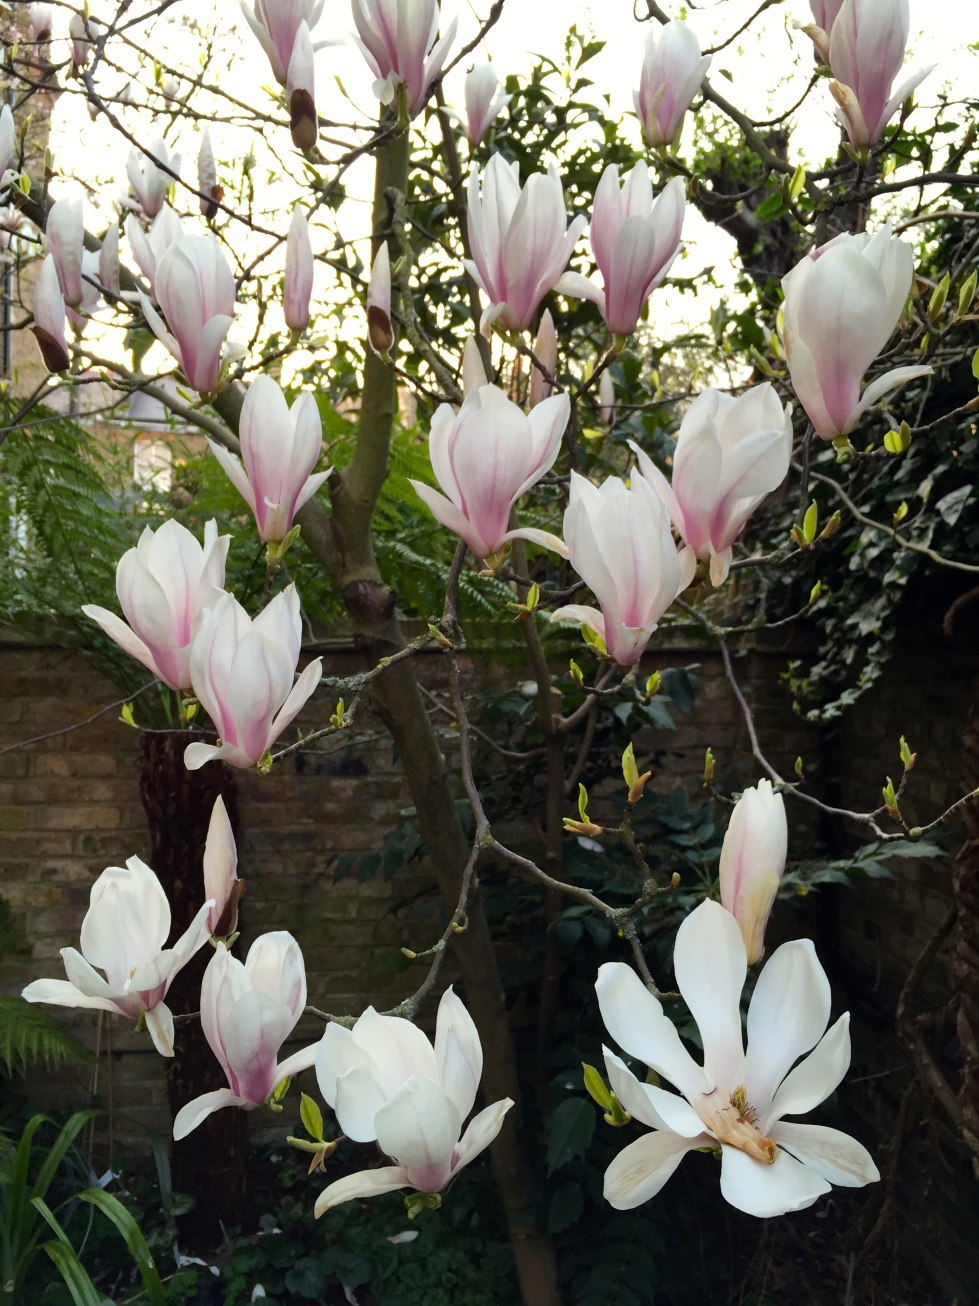 The coconut-ice chalices of Magnolia x soulangeana